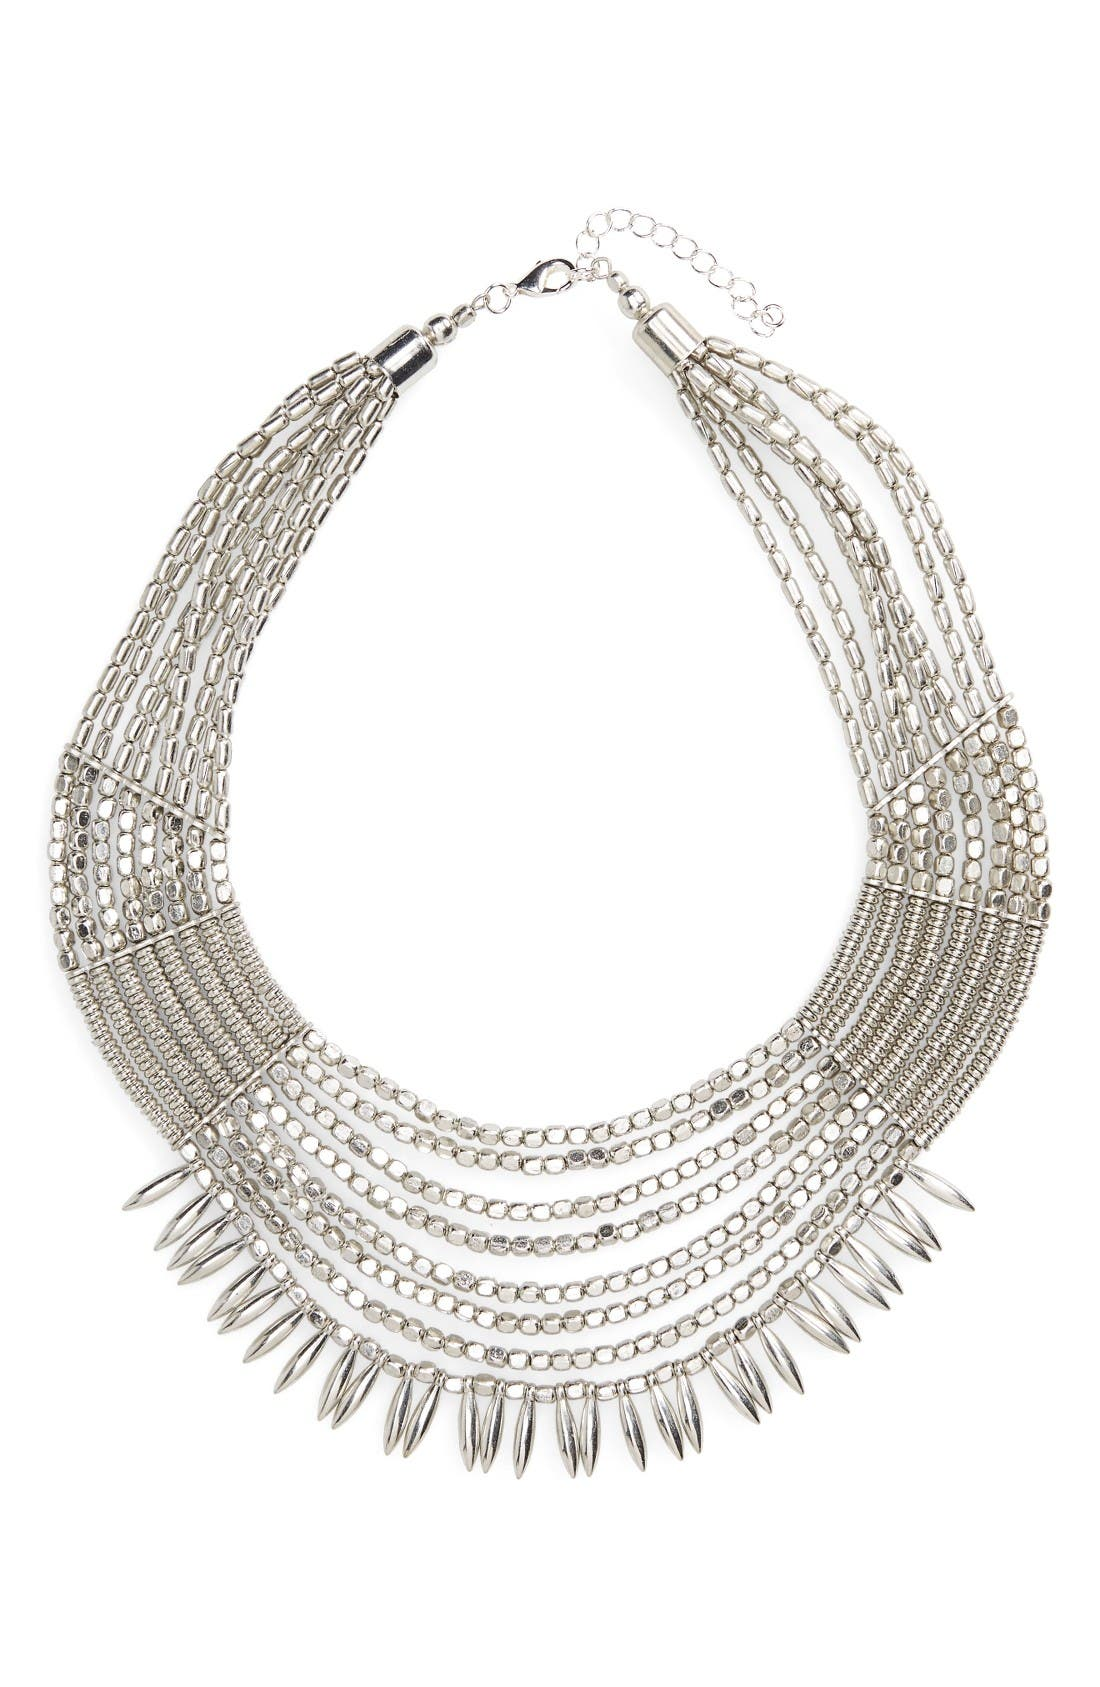 Main Image - Panacea Beaded Collar Statement Necklace